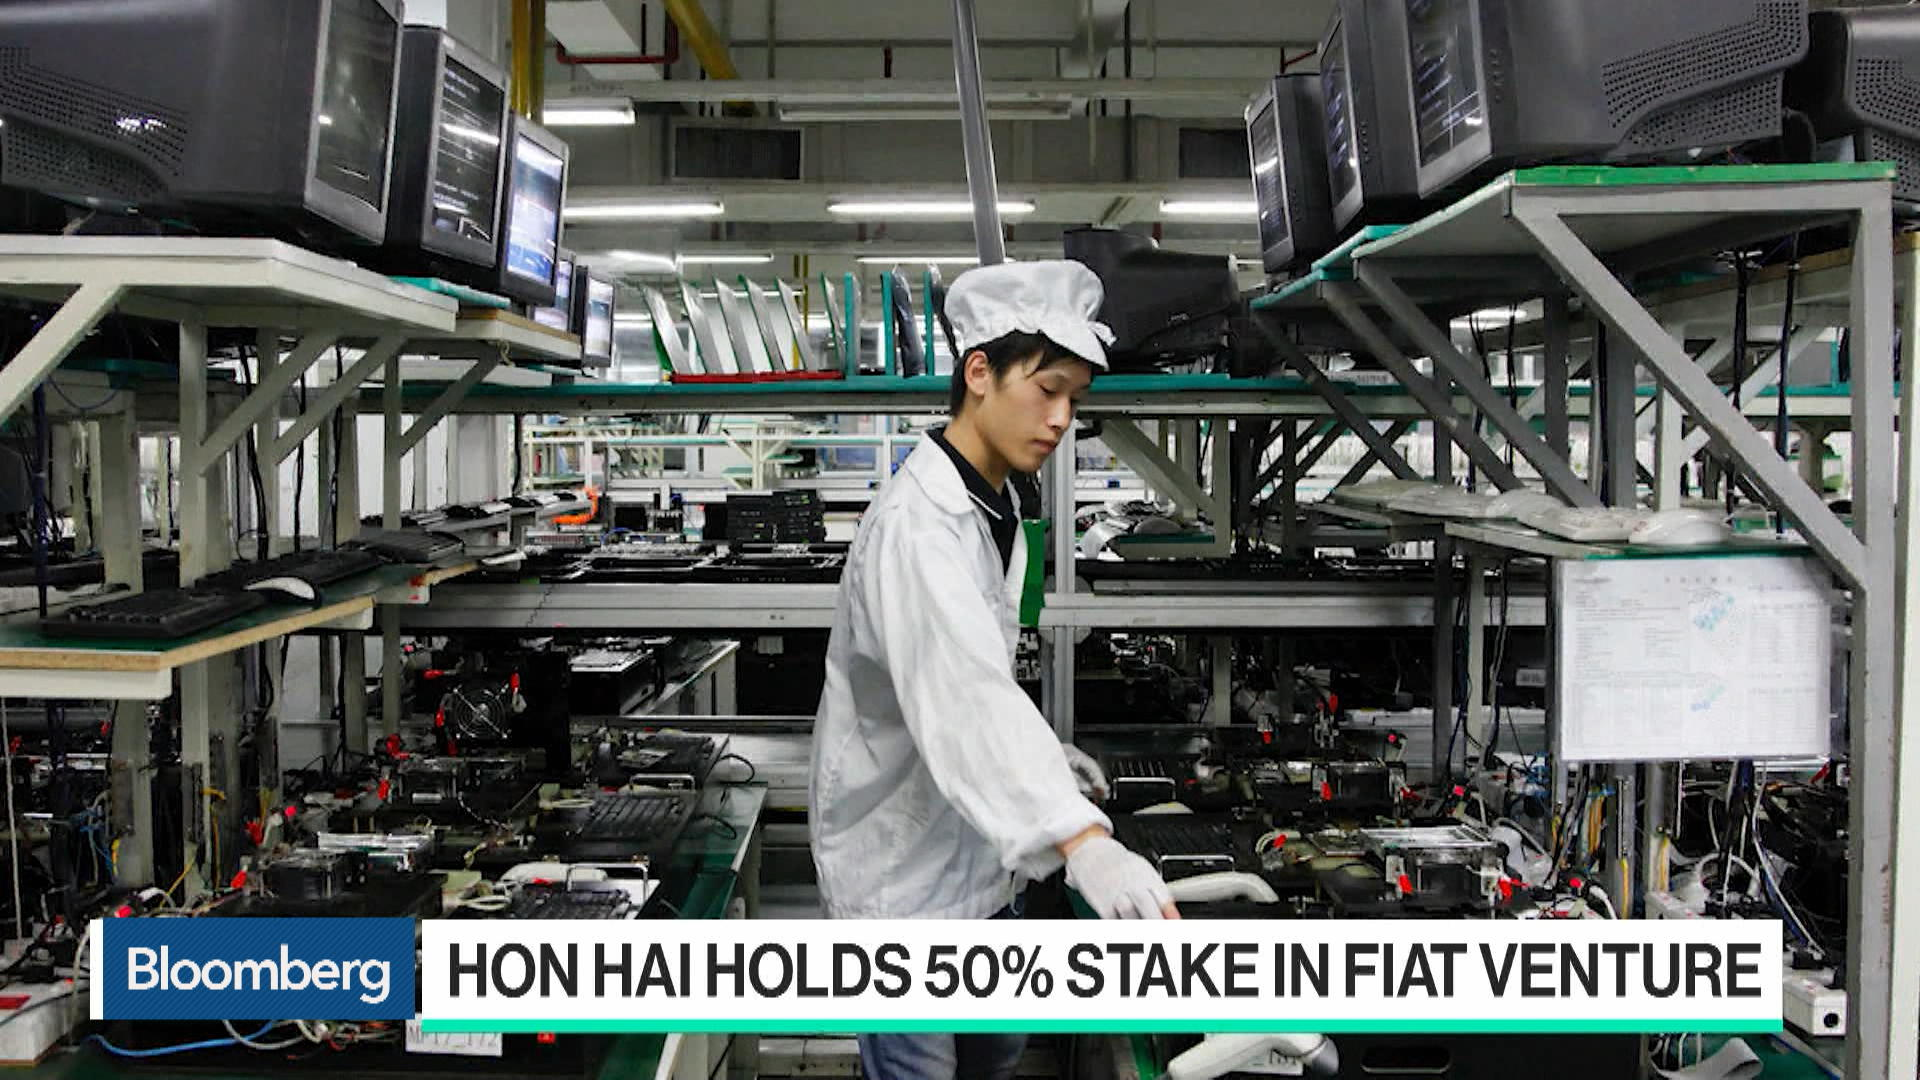 2317 Taiwan Stock Quote Hon Hai Precision Industry Co Ltd Bloomberg Markets